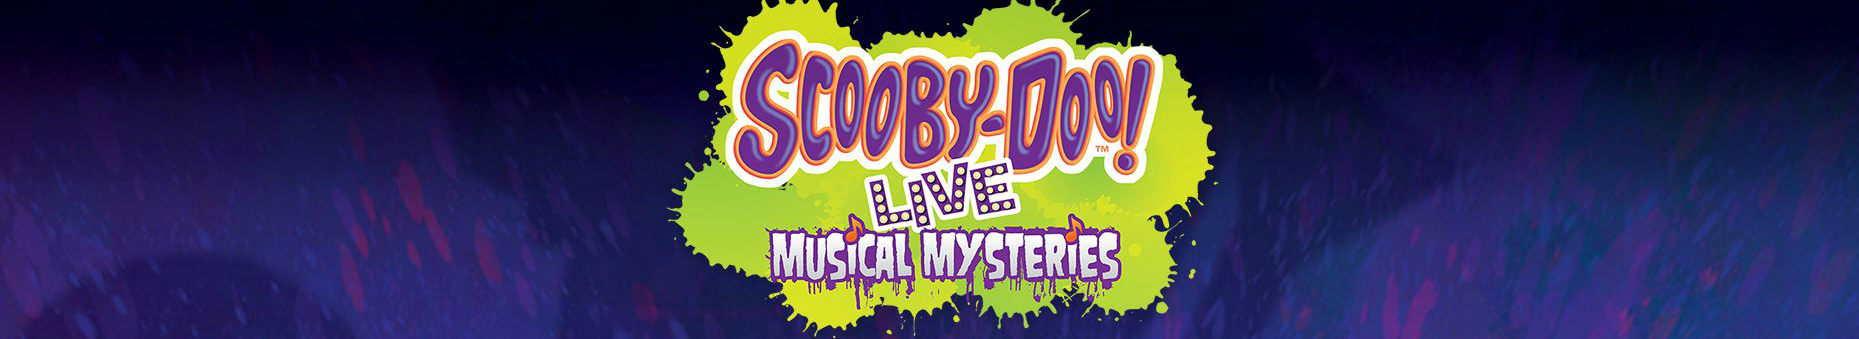 Scooby Doo Live - Musical Mysteries banner image